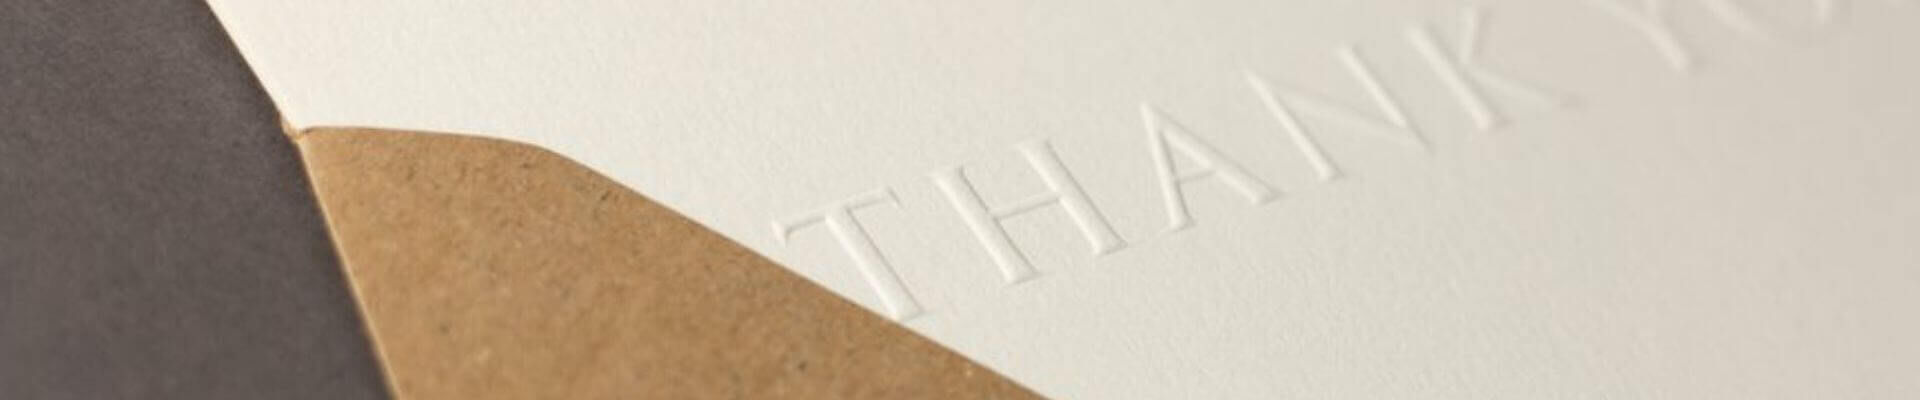 Personalisation - Process - Embossing